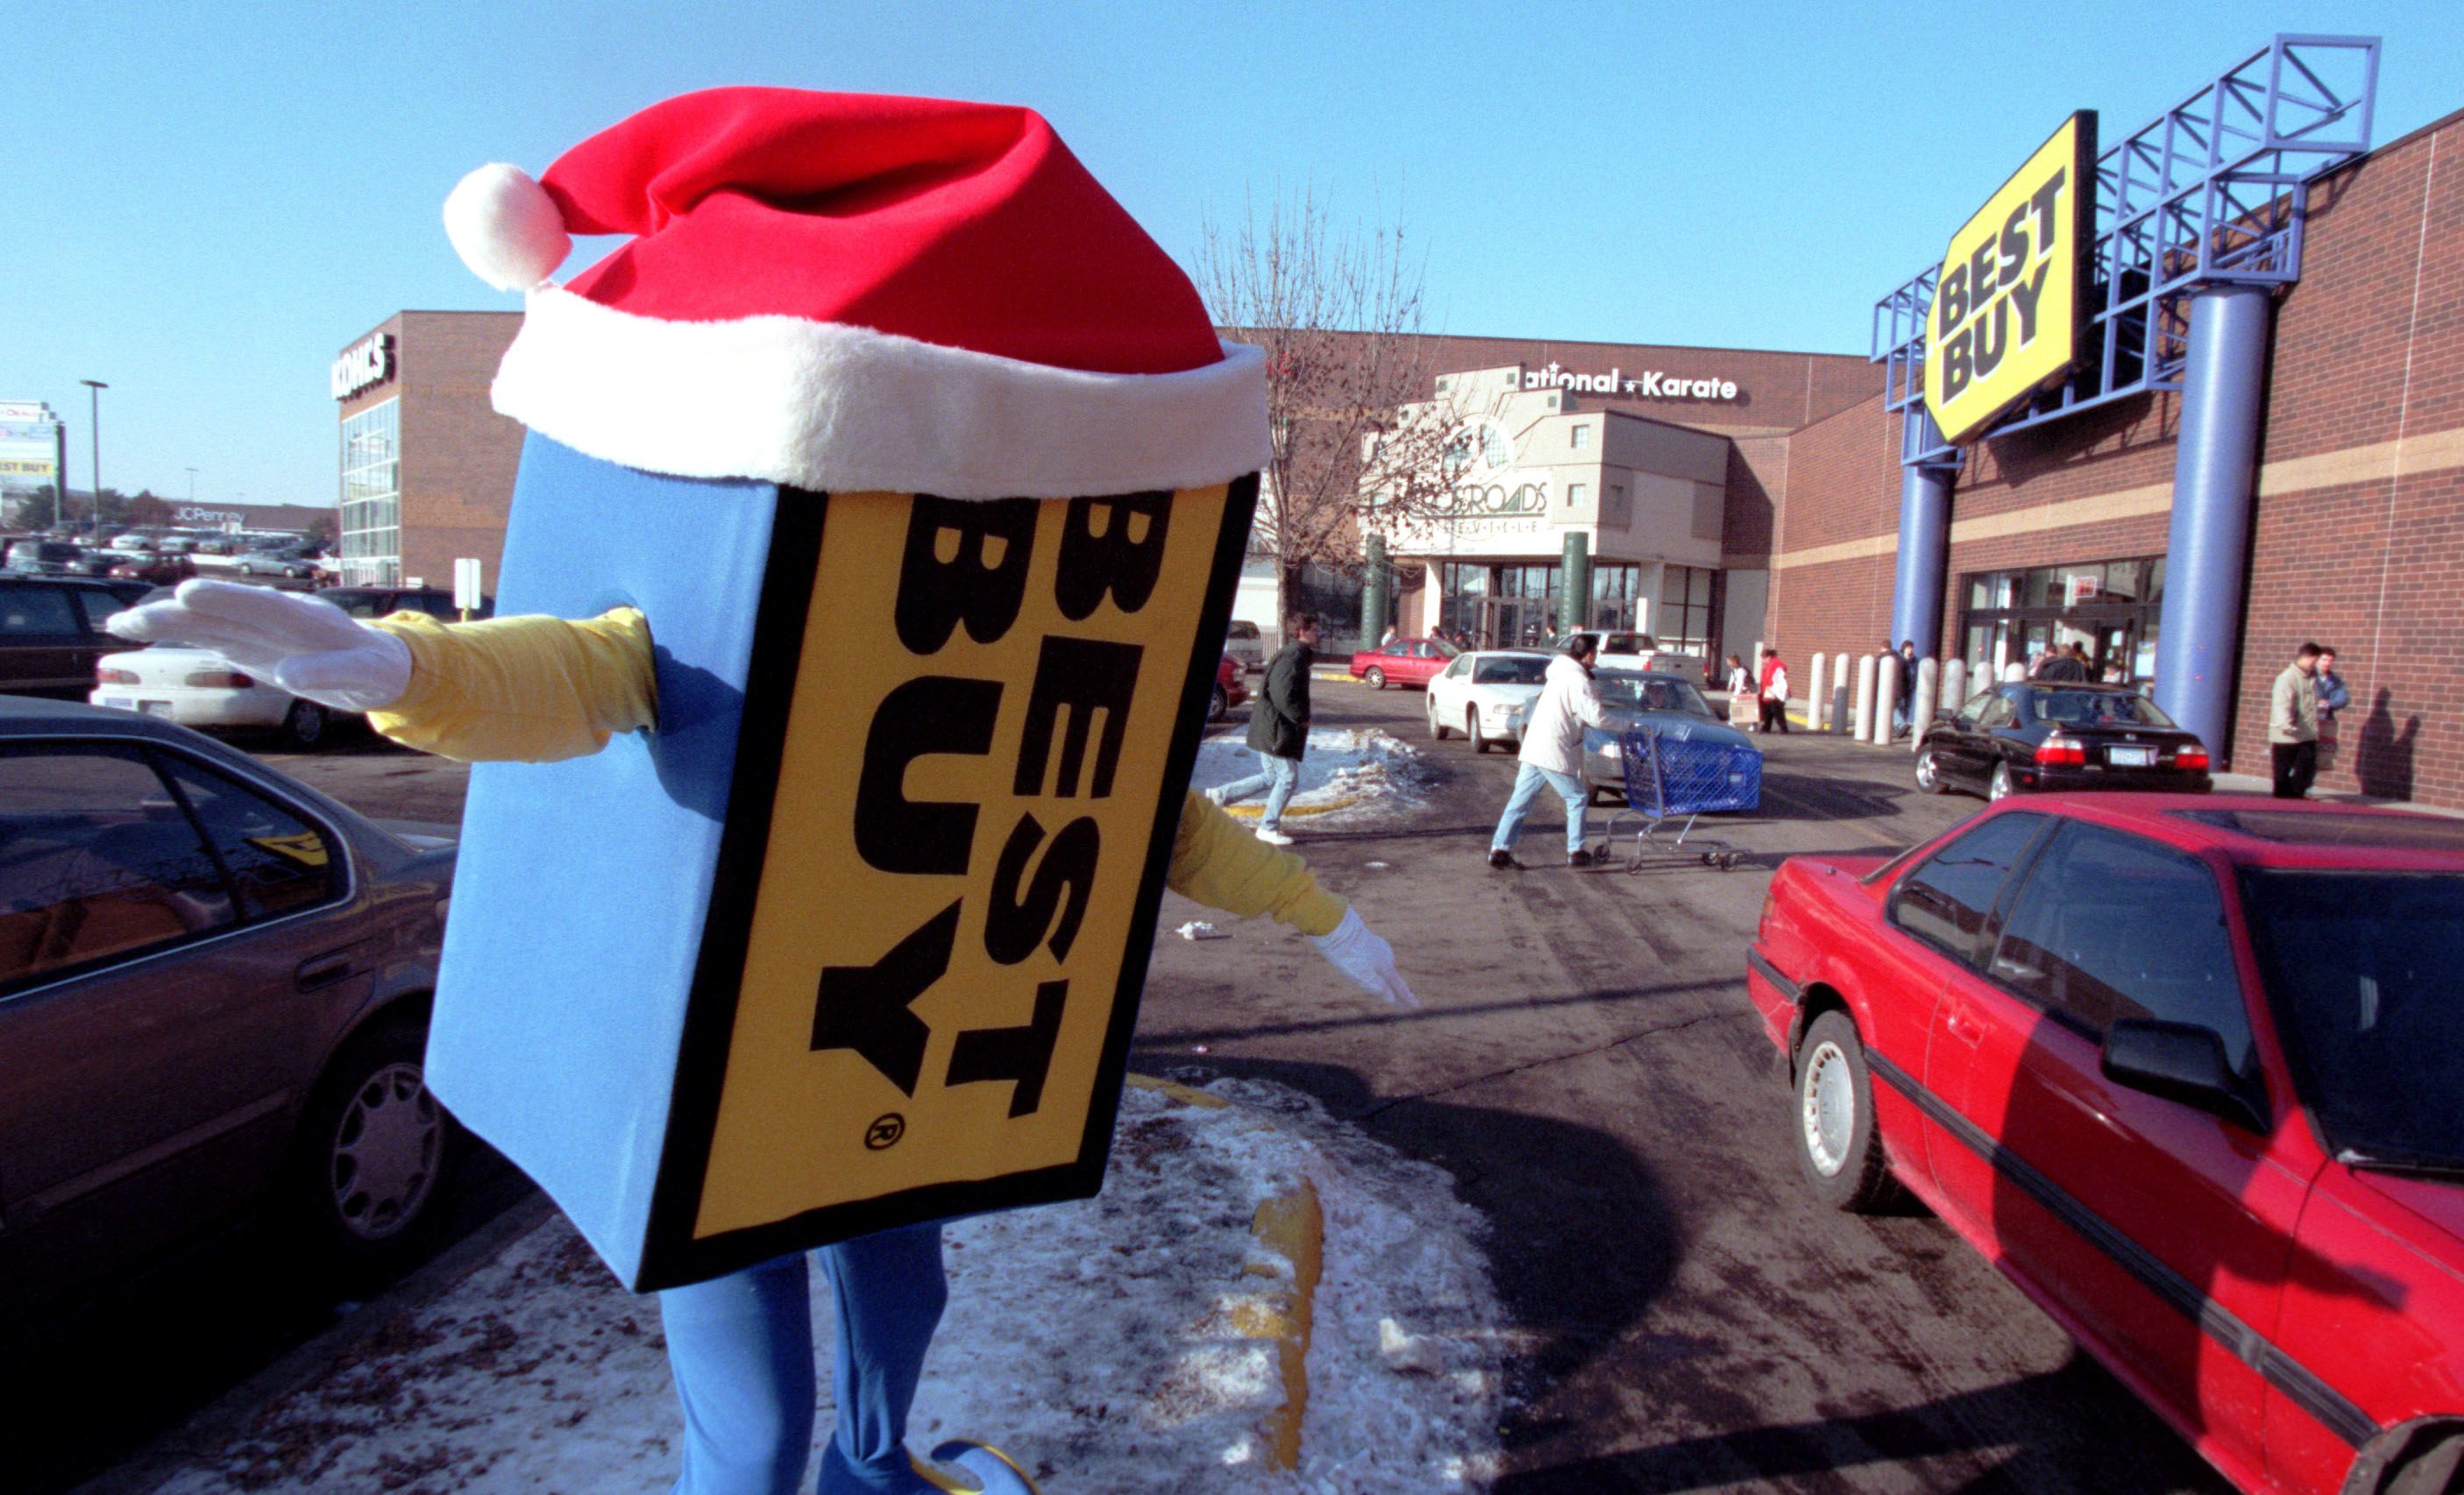 The Best Buy mascot dancing in a parking lot with a Santa hat on